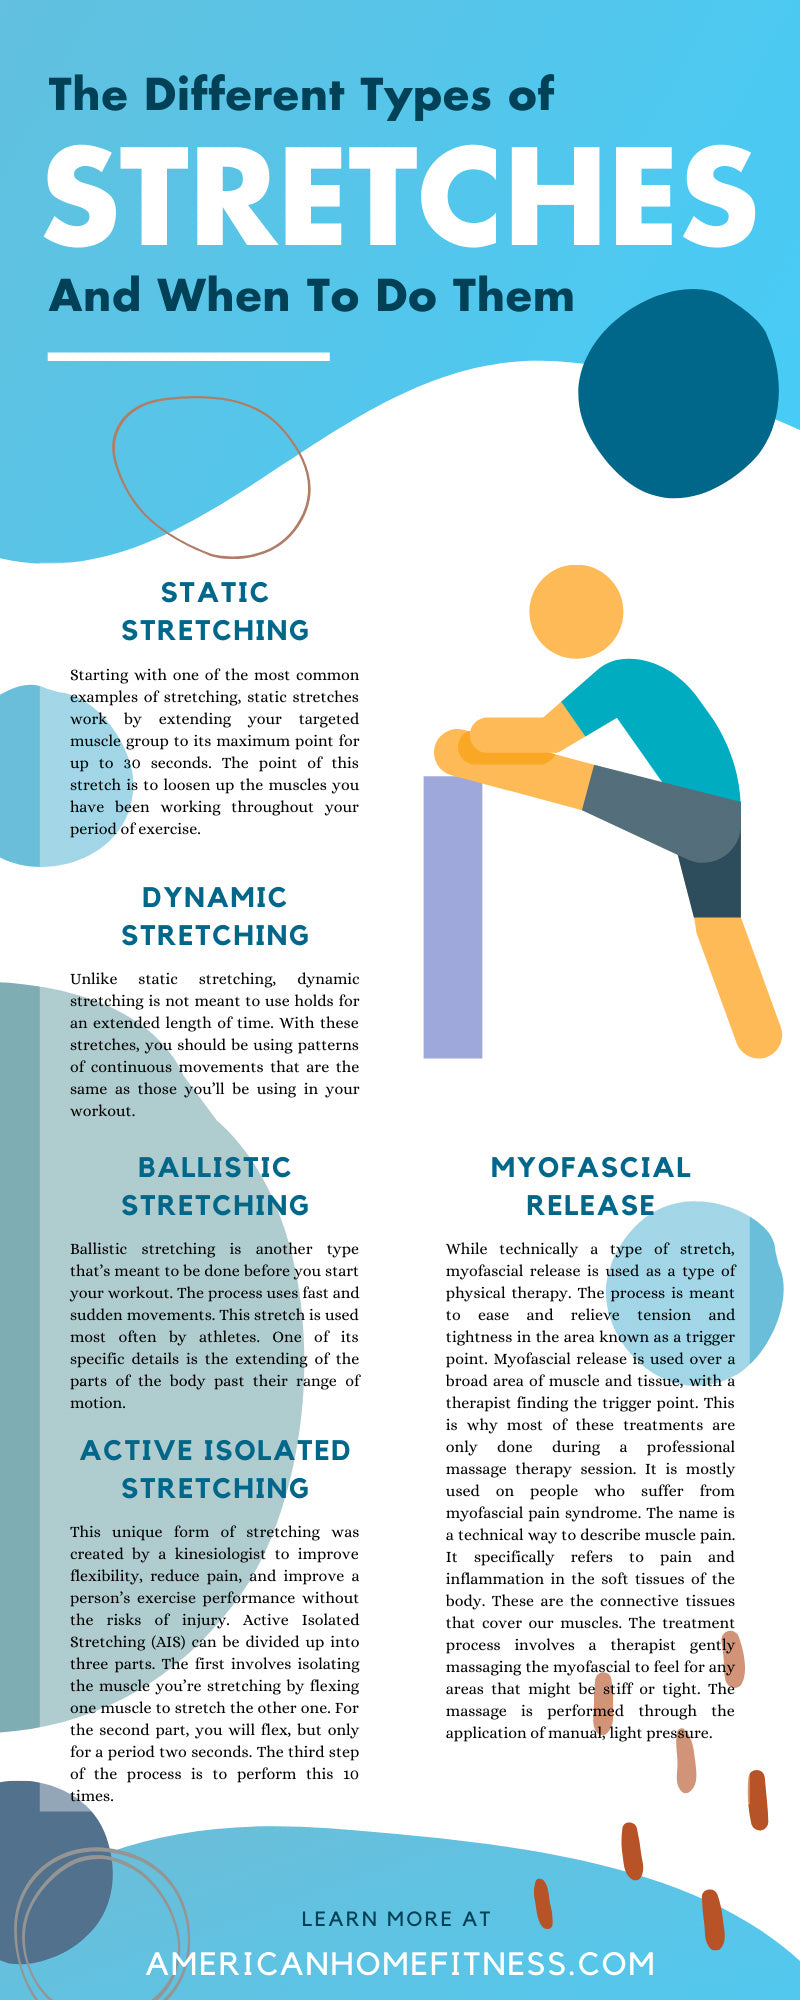 The Different Types of Stretches and When To Do Them